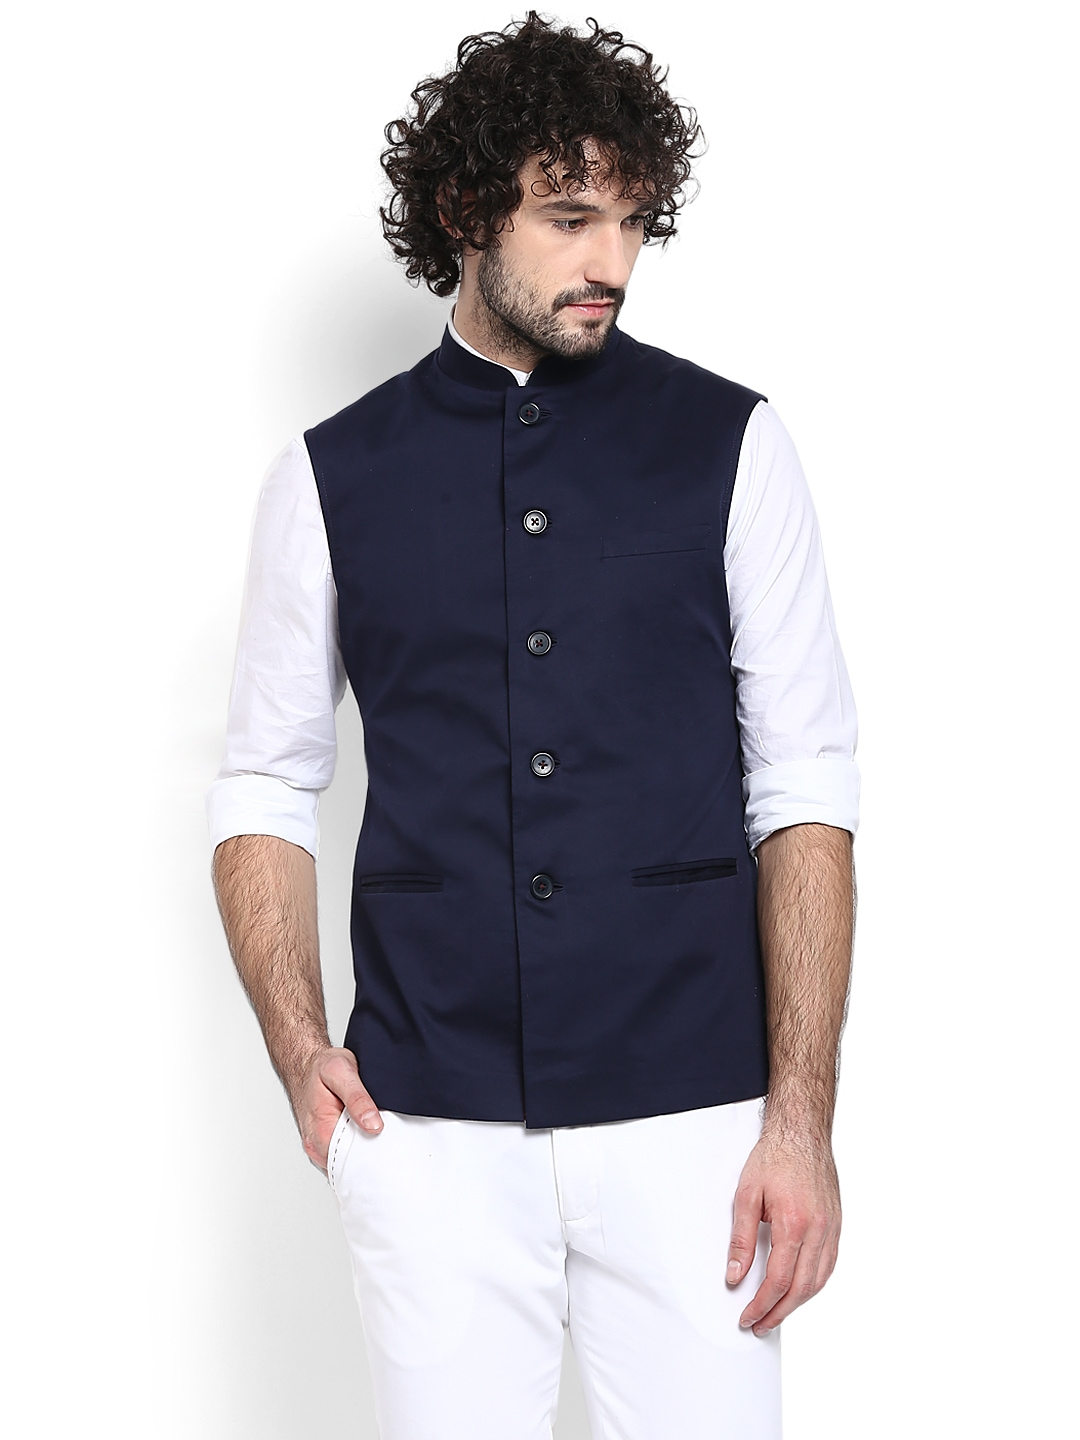 Glass Canisters For Kitchen Mr Button Navy Nehru Jacket Price Myntra Ethnic Jacket